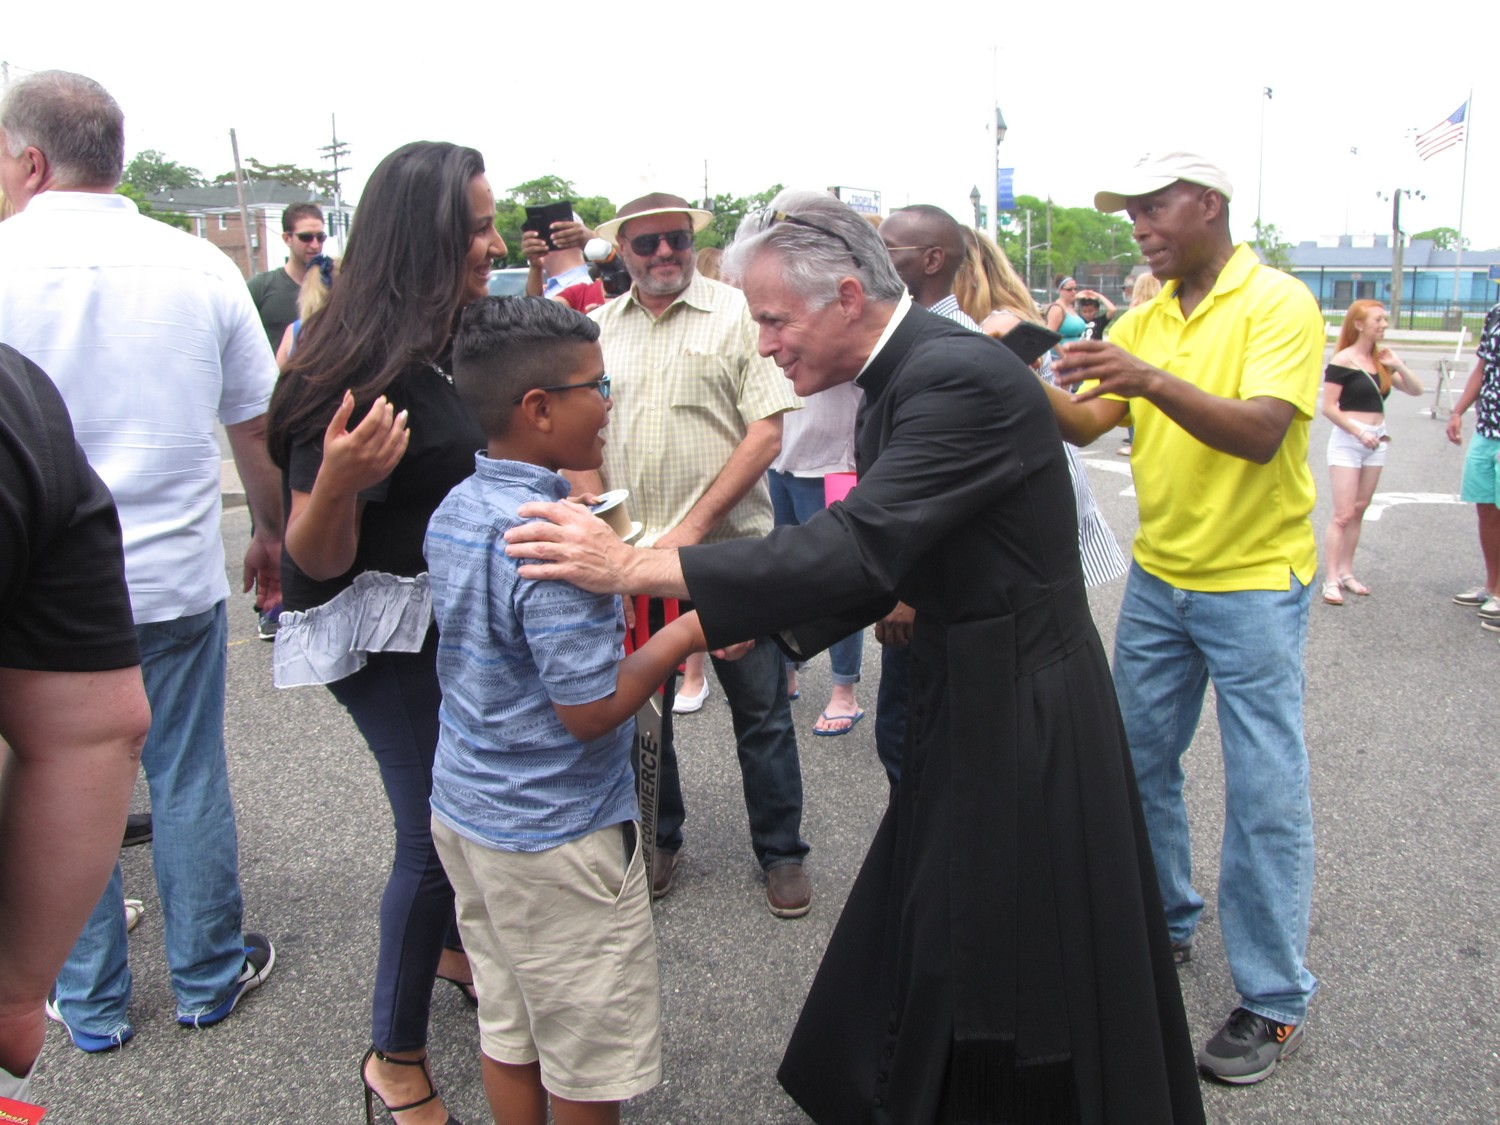 Elijah Espinal, 9, near right, greeted the Rev. Douglas Arcoleo after the festival's ribbon-cutting ceremony.